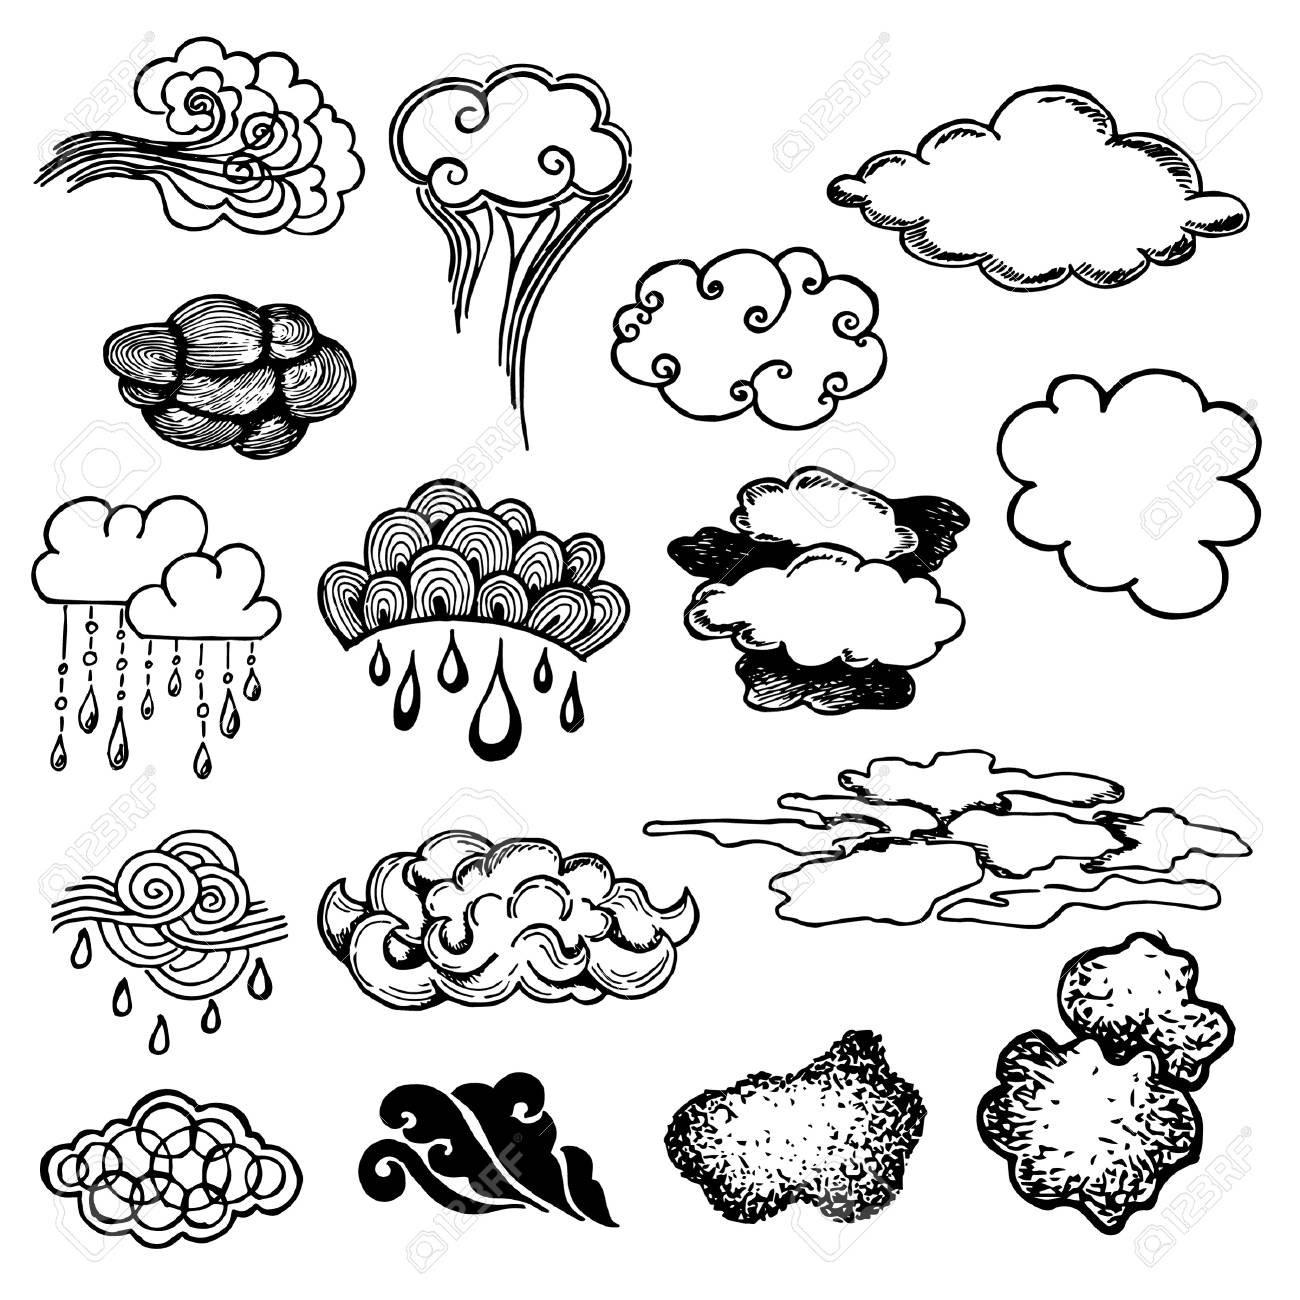 Set of stylized clouds sketch of doodle hand drawing black and white on